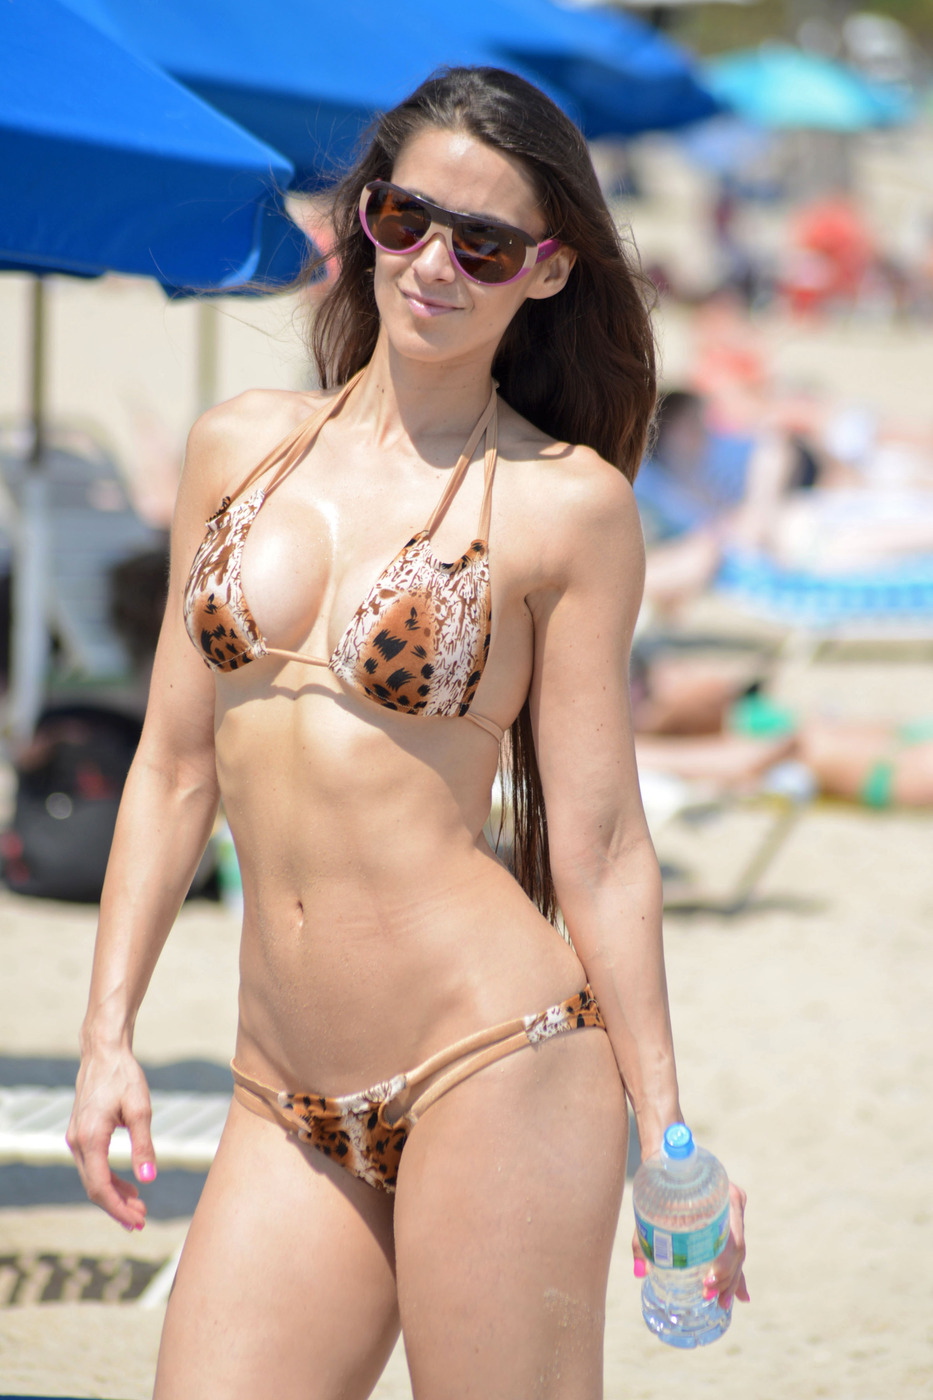 anais-zanotti-wearing-a-bikini-in-miami-9